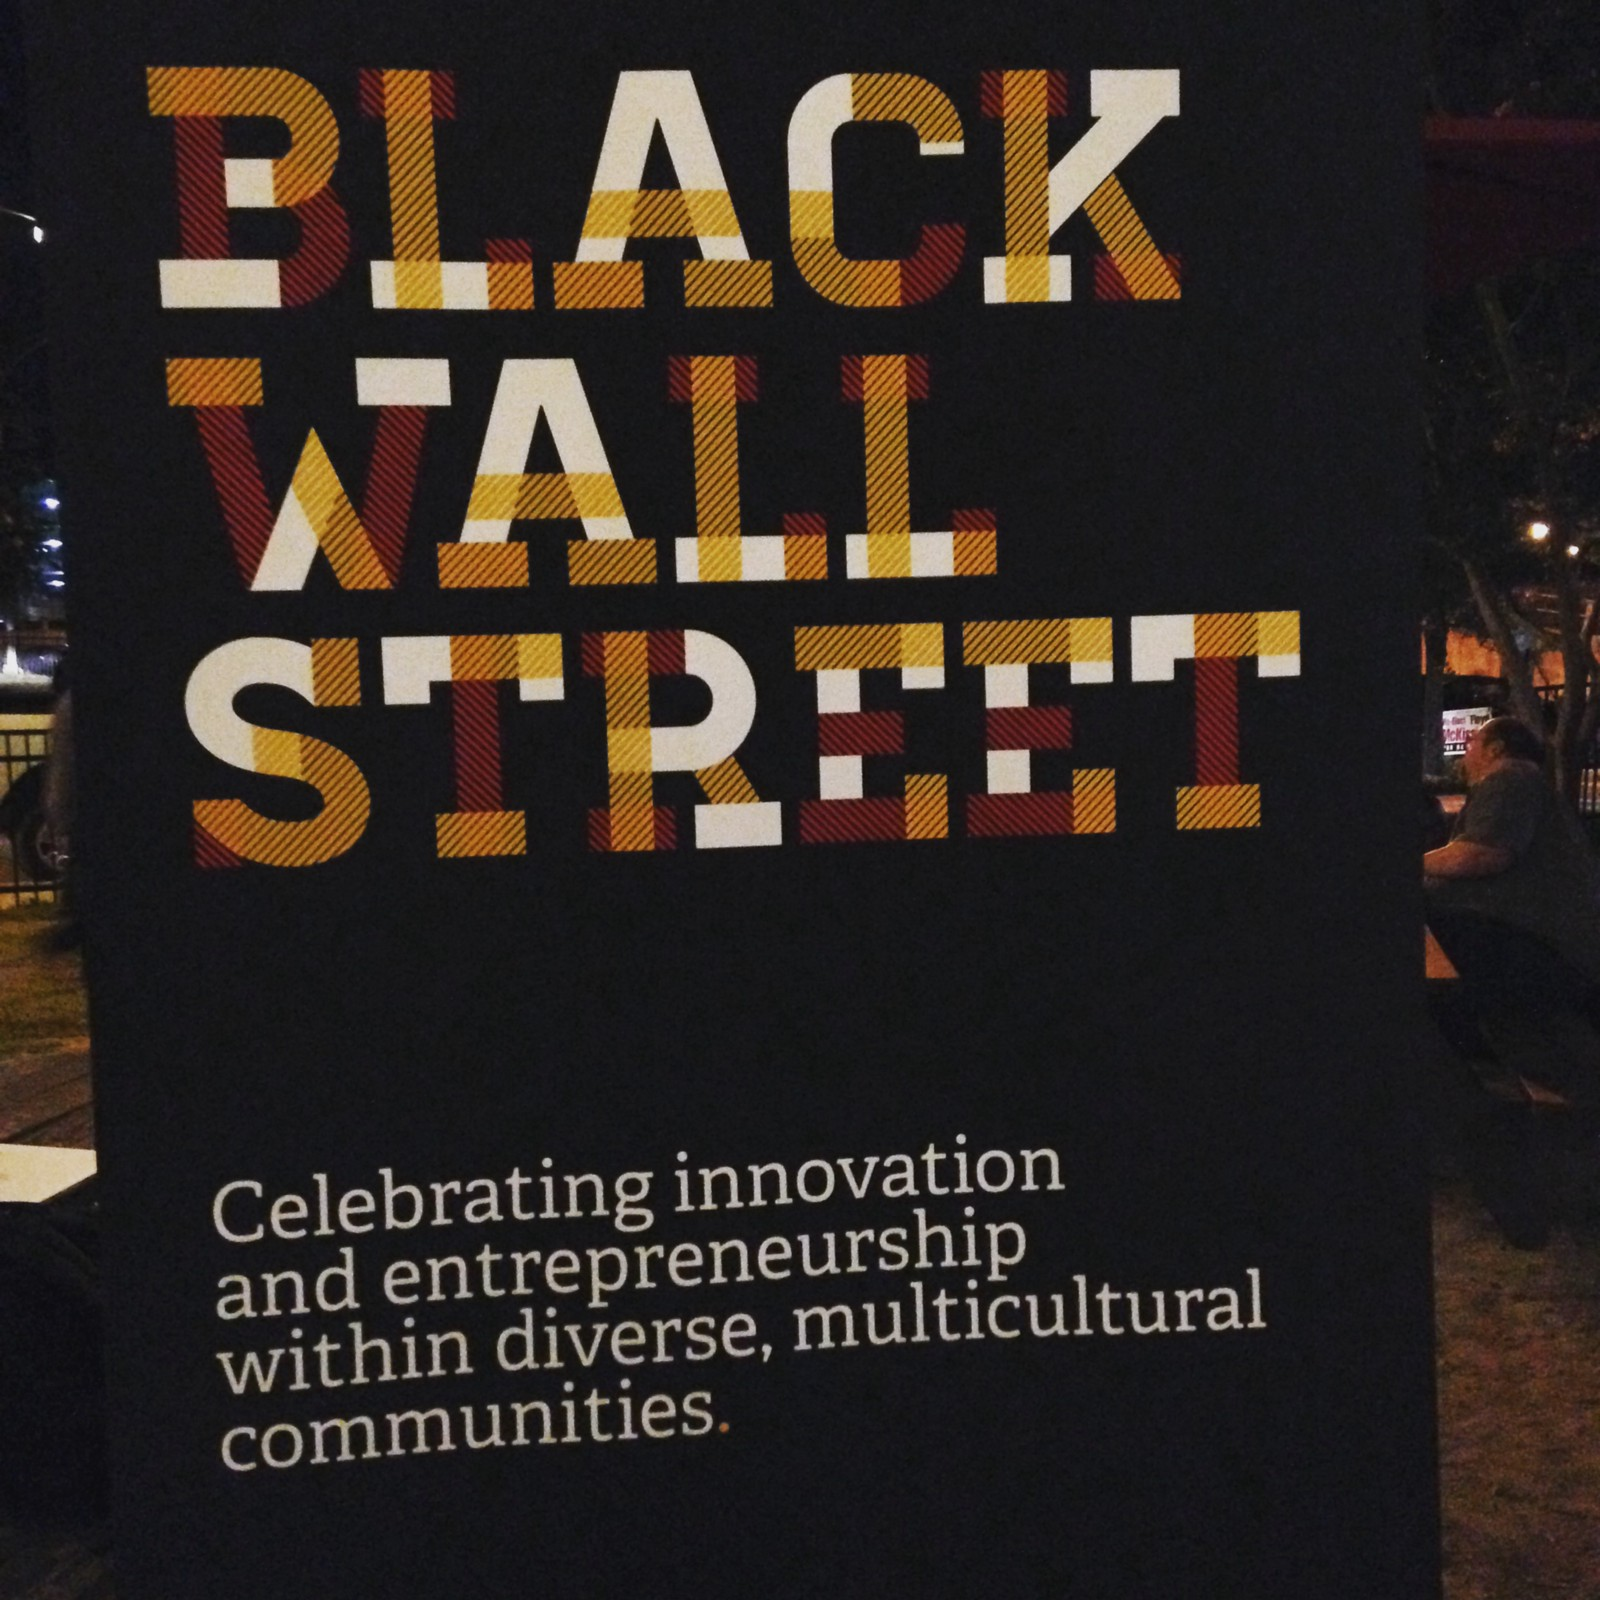 two weekends ago i had the privilege of volunteering for black wall street homecoming in durham nc set up by the amazing dee mcdougal of square 1 bank